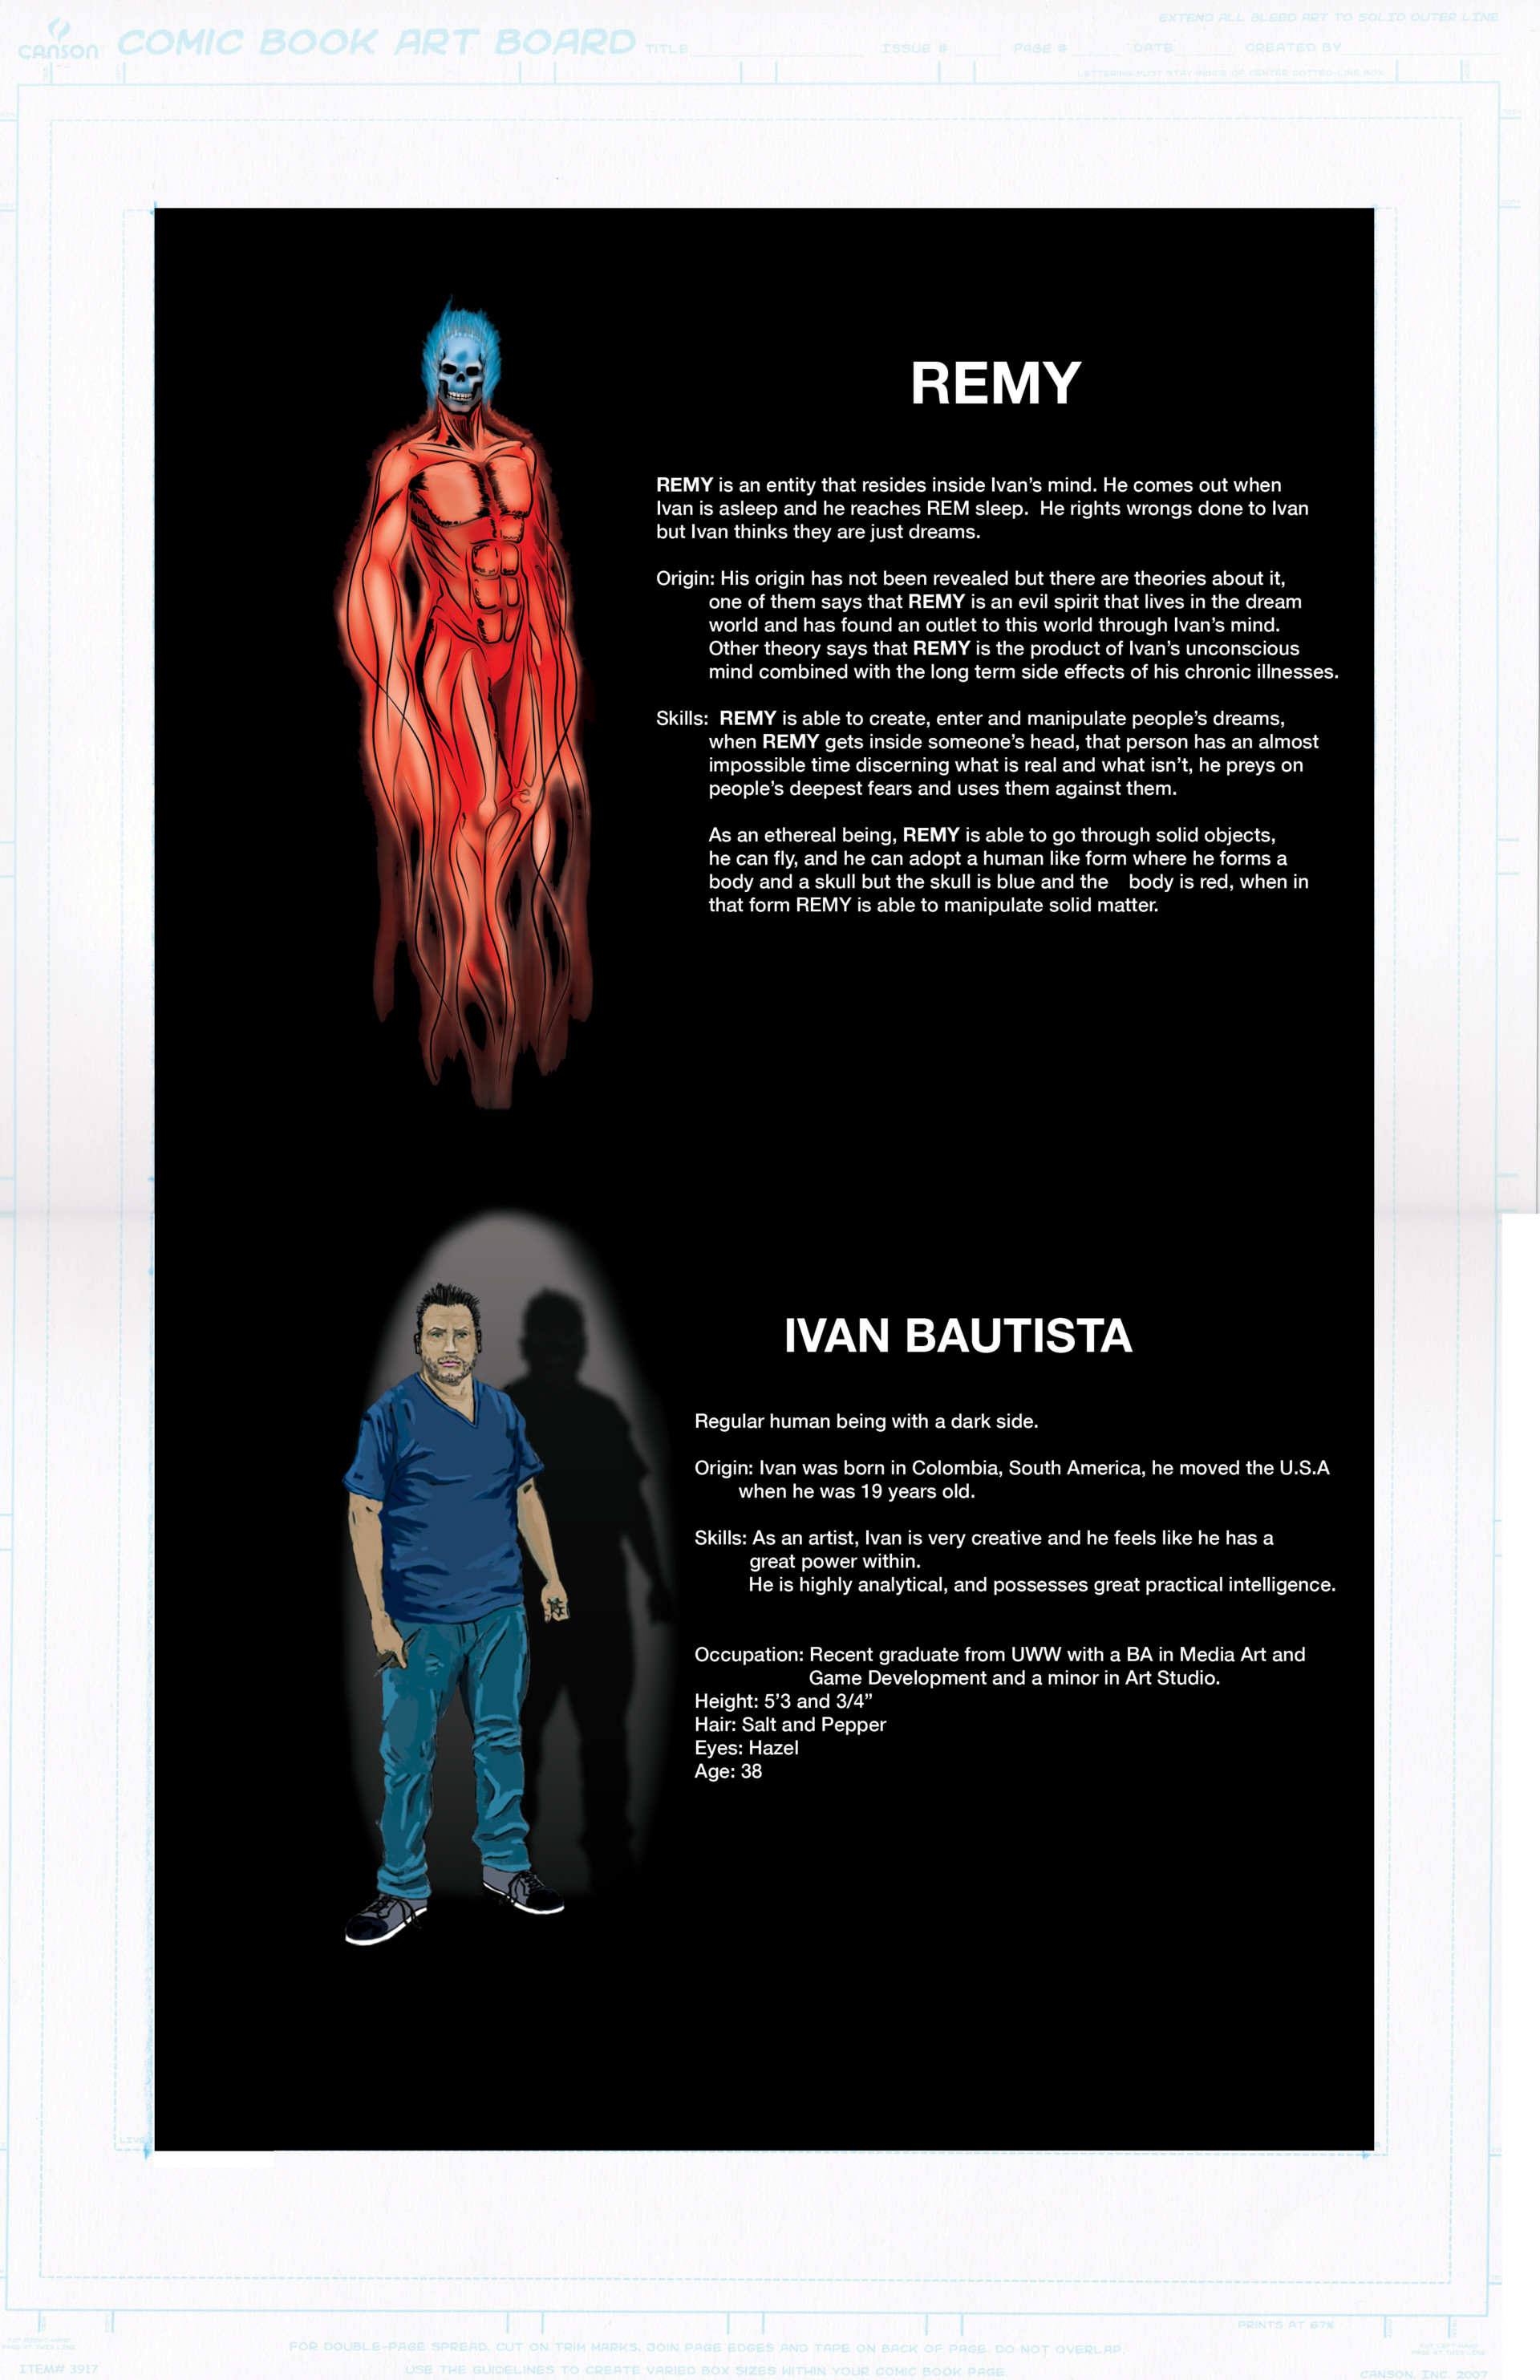 Ivan bautista remy character design graphic novel insert by ivan bautista fall 2016